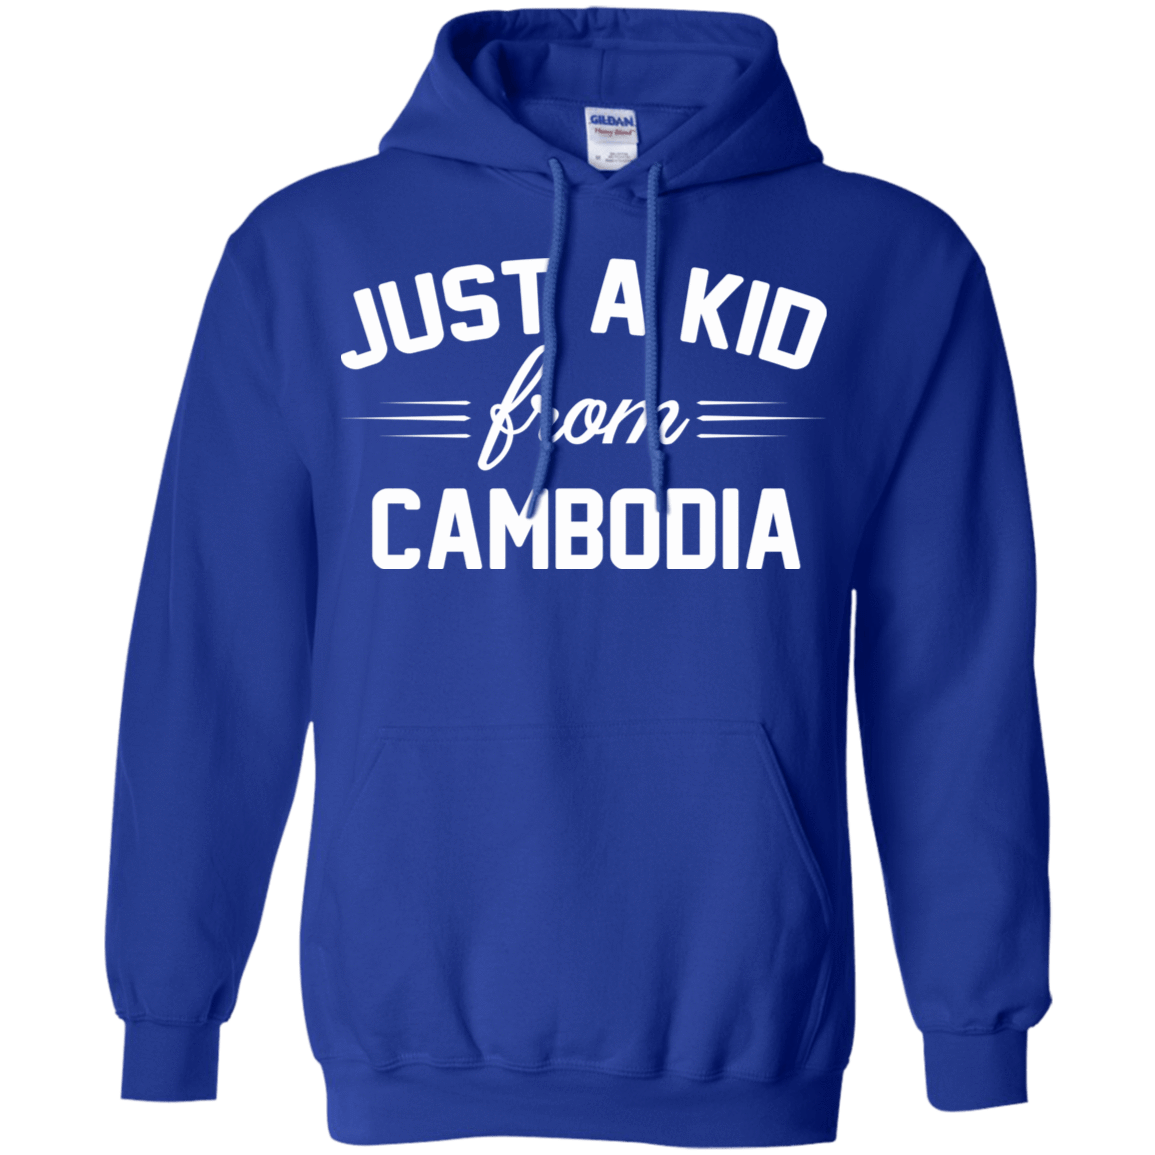 Just a Kid Store | Cambodia T-Shirts, Hoodie, Tank 541-4765-72092774-23175 - Tee Ript